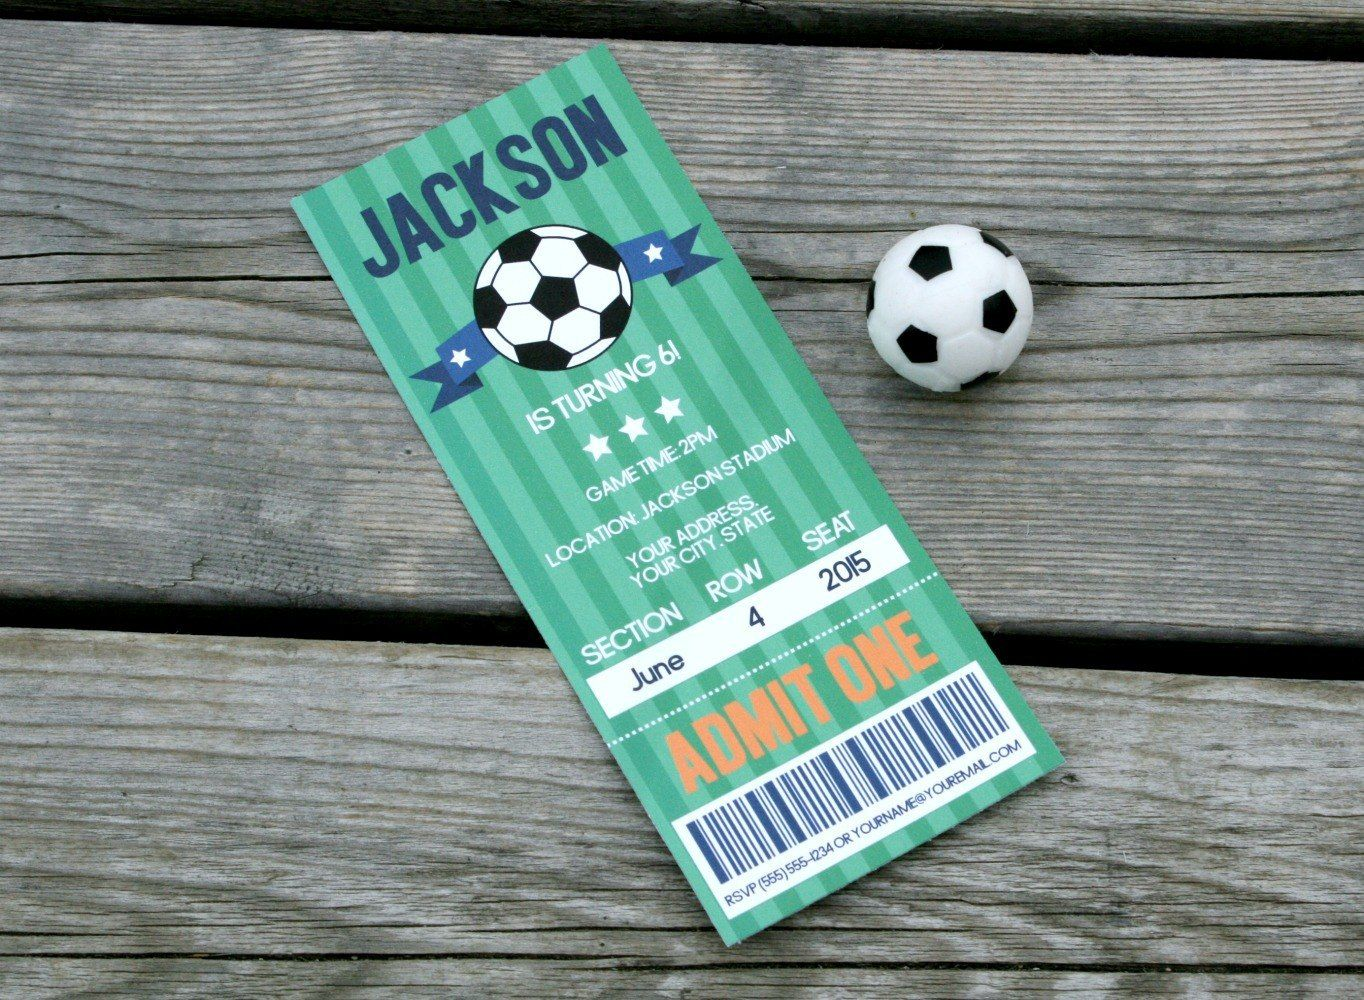 Download And Enjoy These Free Soccer Invitations They Are Designed To Look Li Soccer Party Invitations Soccer Birthday Parties Kids Birthday Party Invitations